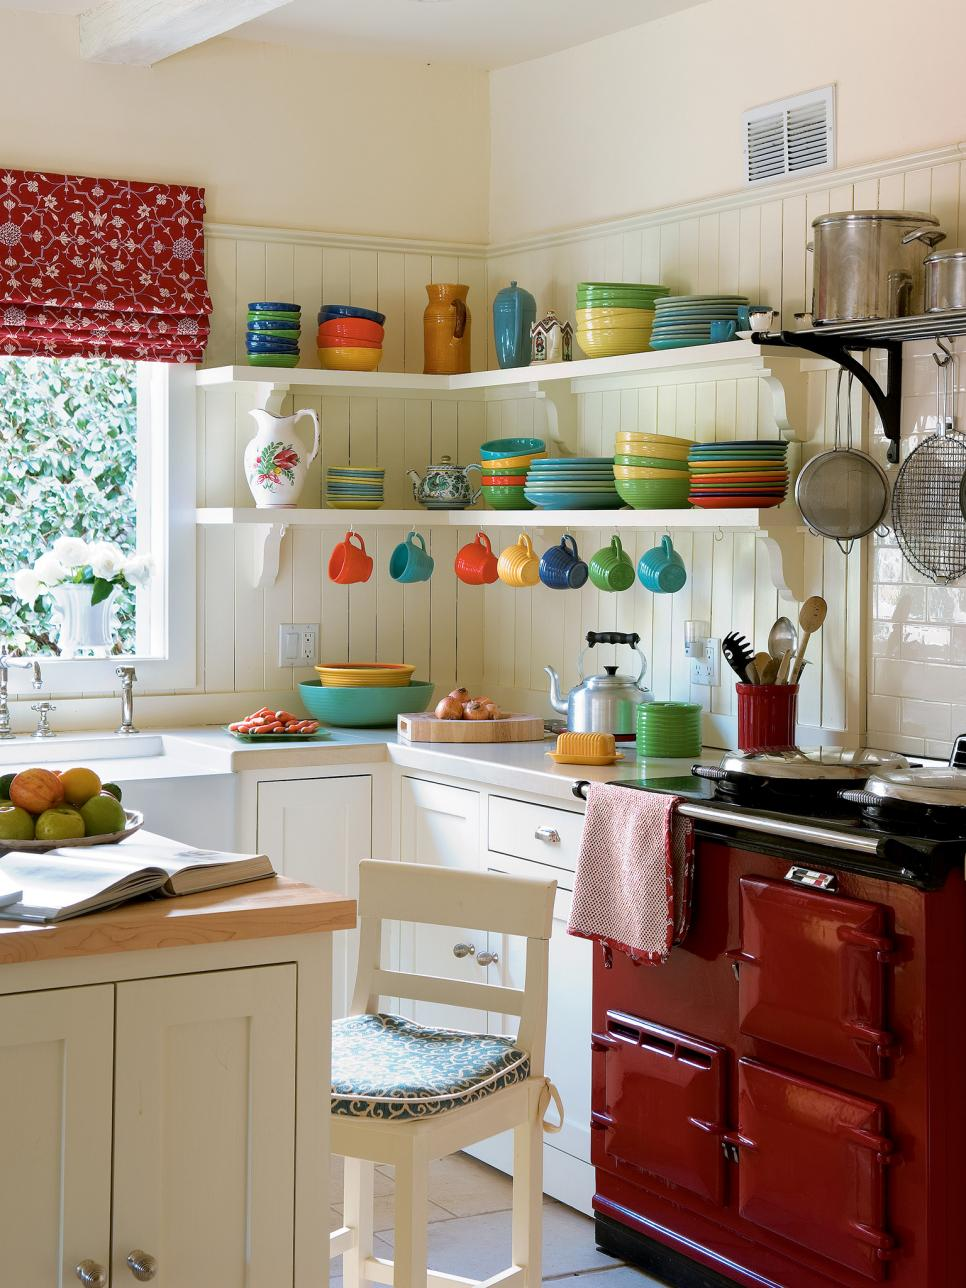 small kitchen ideas pictures of small kitchen design ideas from hgtv | hgtv QYCJEUI